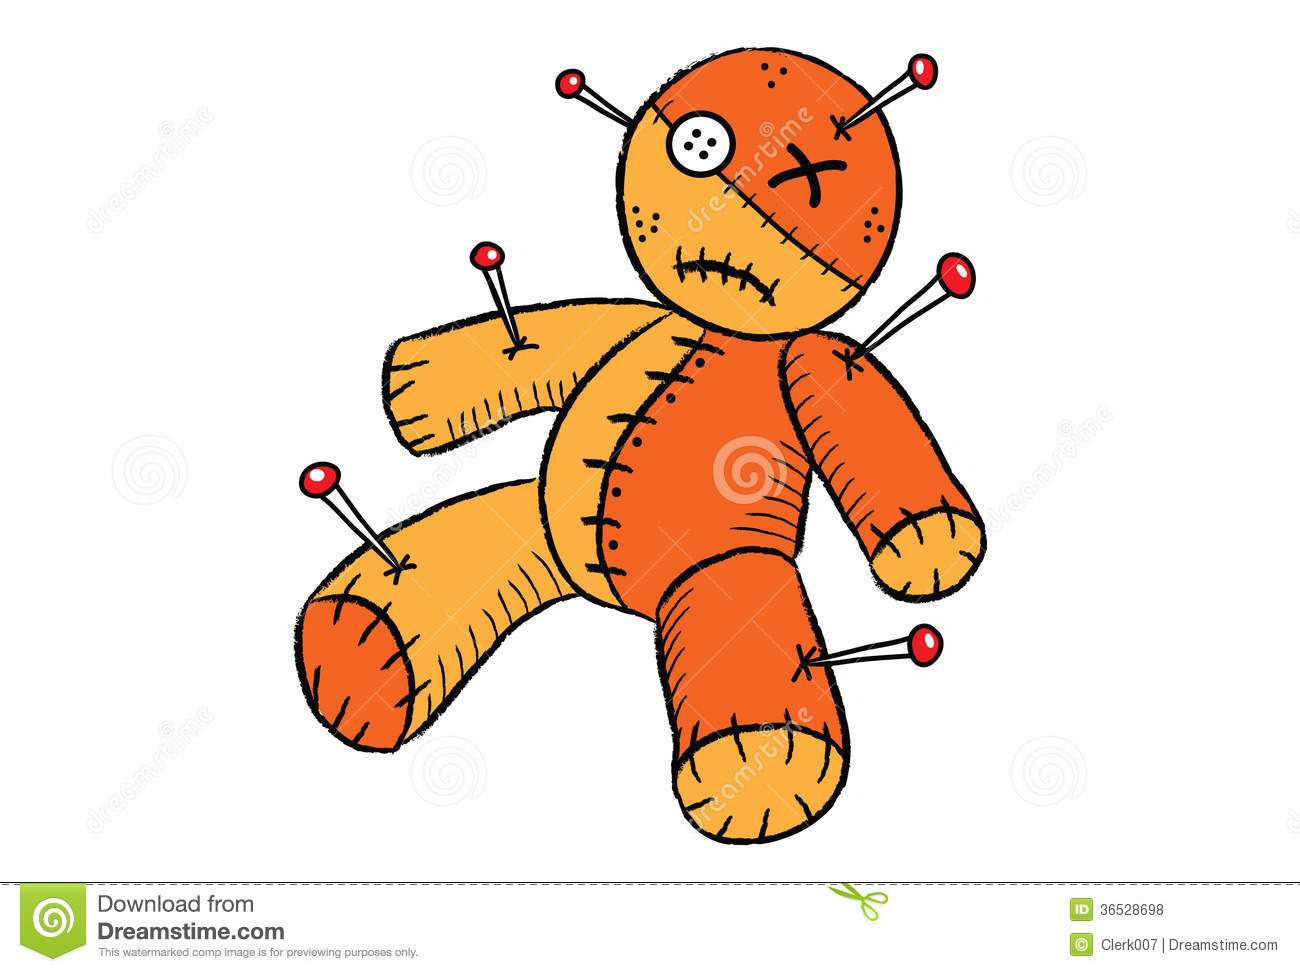 Voodoo doll clipart.